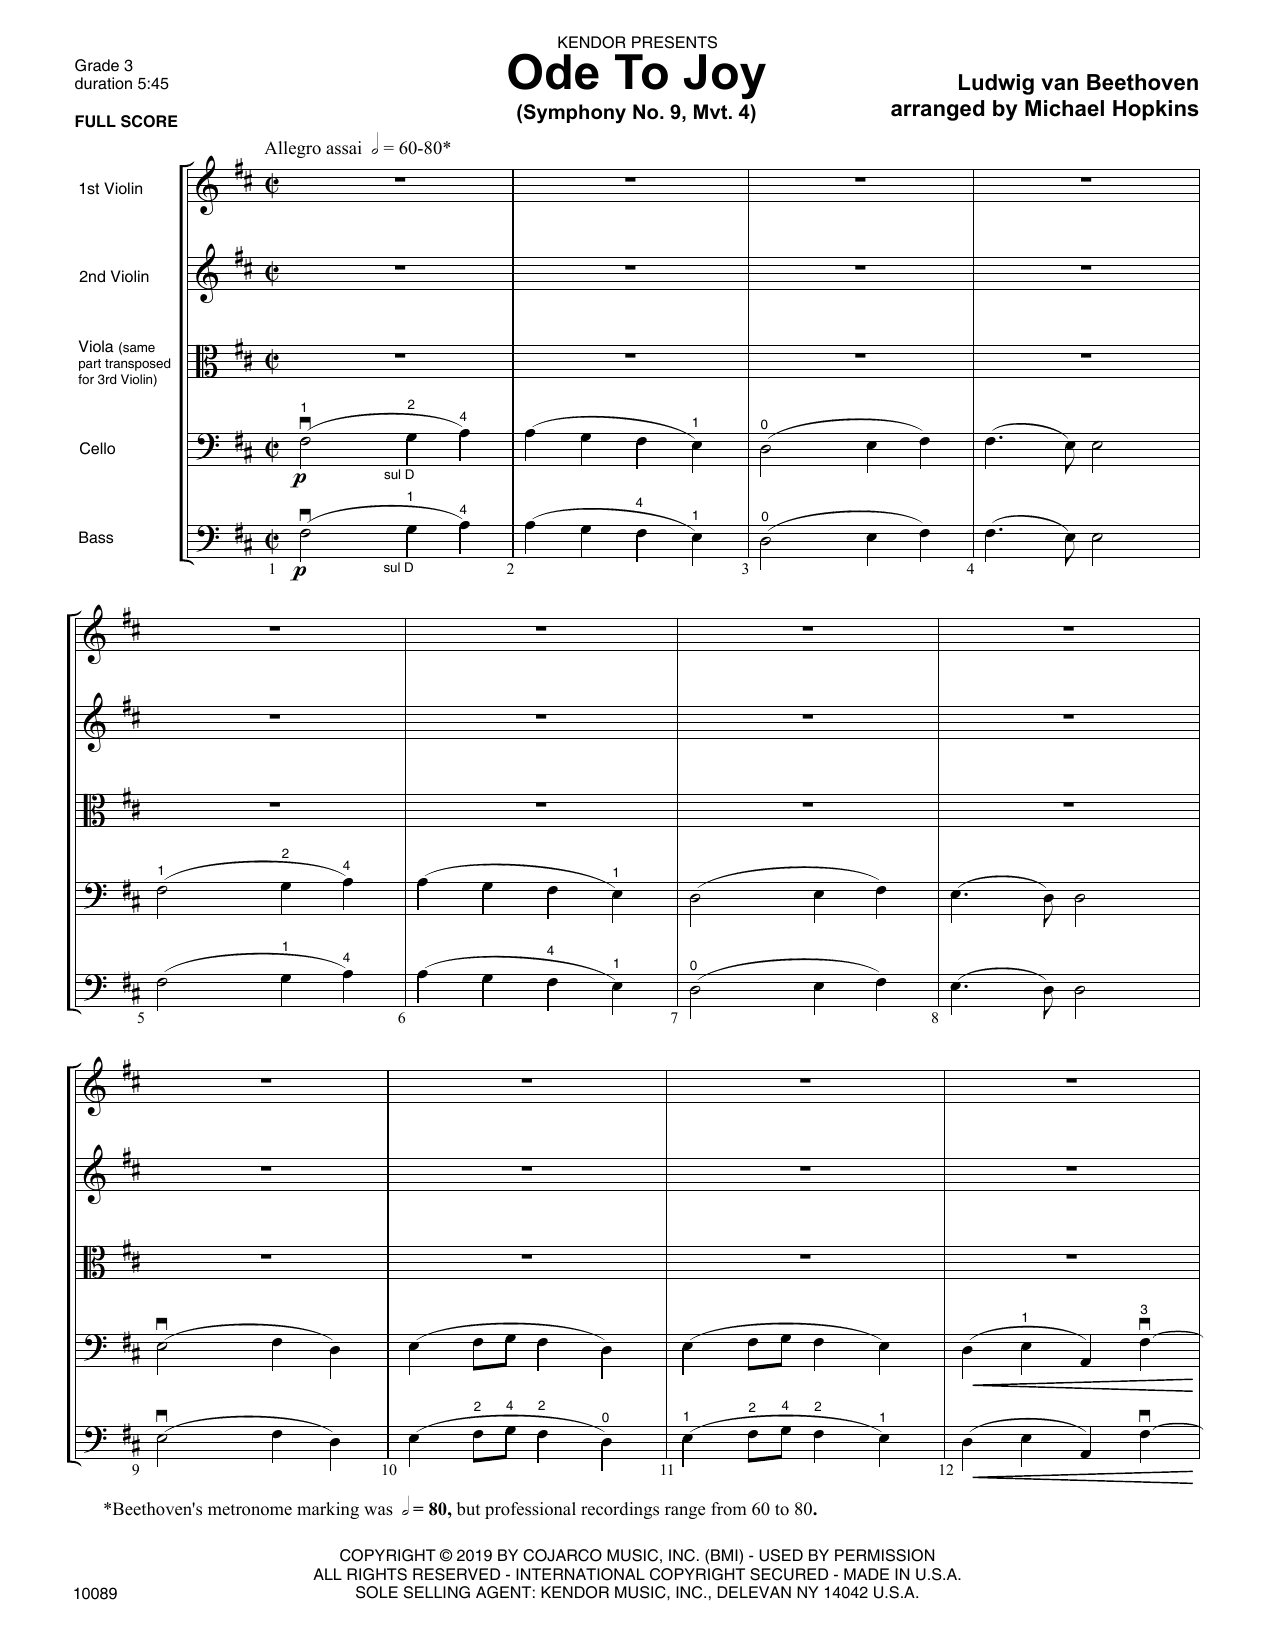 Michael Hopkins Ode To Joy (Symphony No. 9, Mvt. 4) - Full Score sheet music notes and chords. Download Printable PDF.